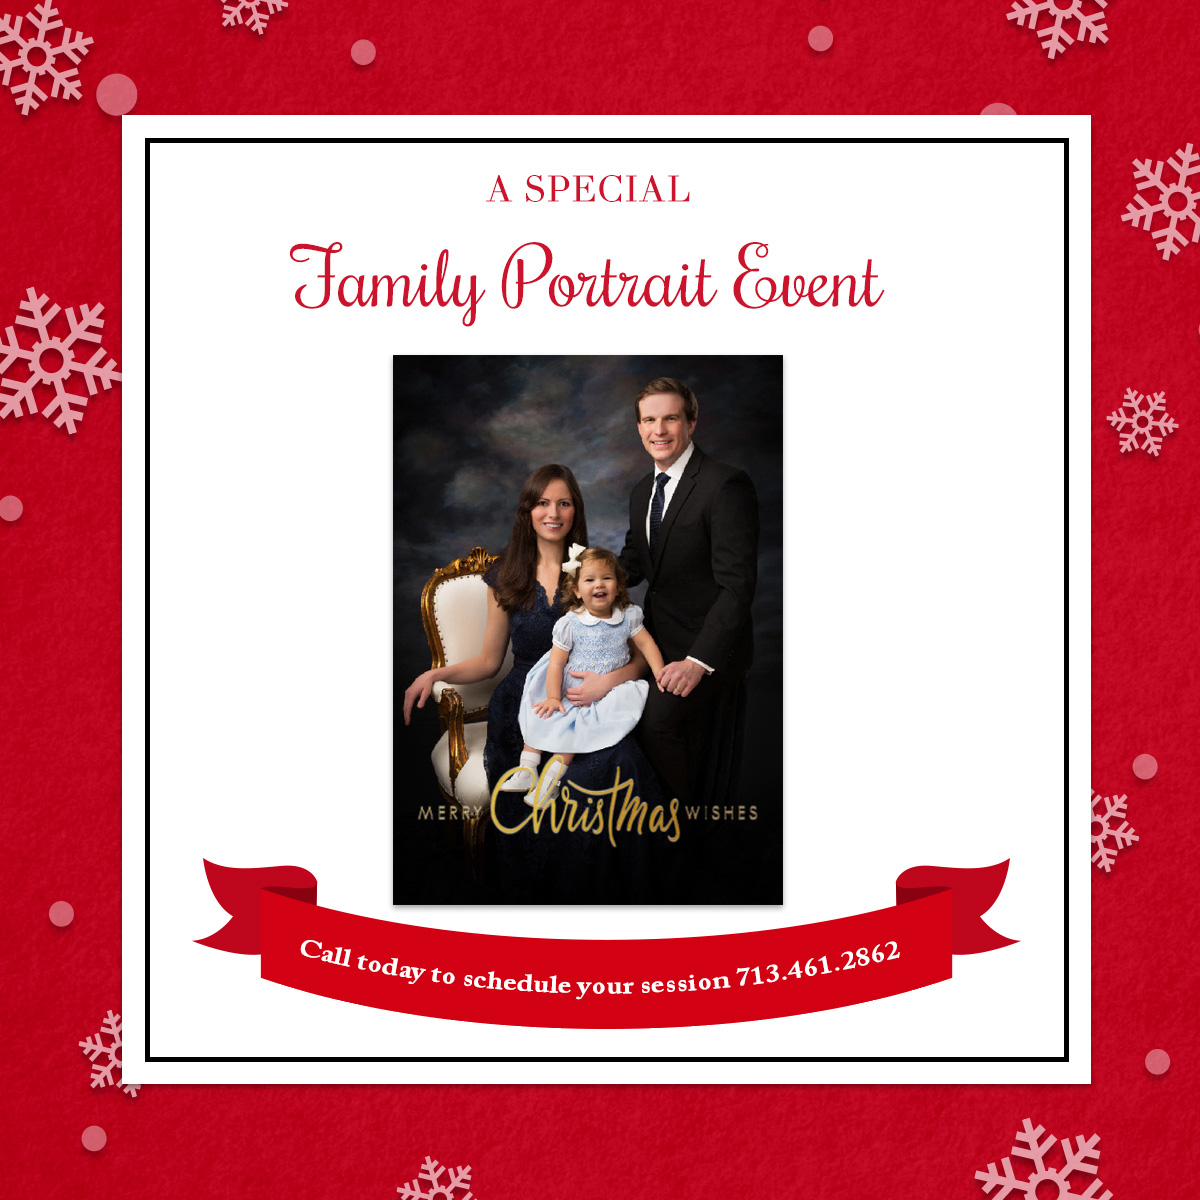 Family Portrait Photography Holiday Cards in Houston